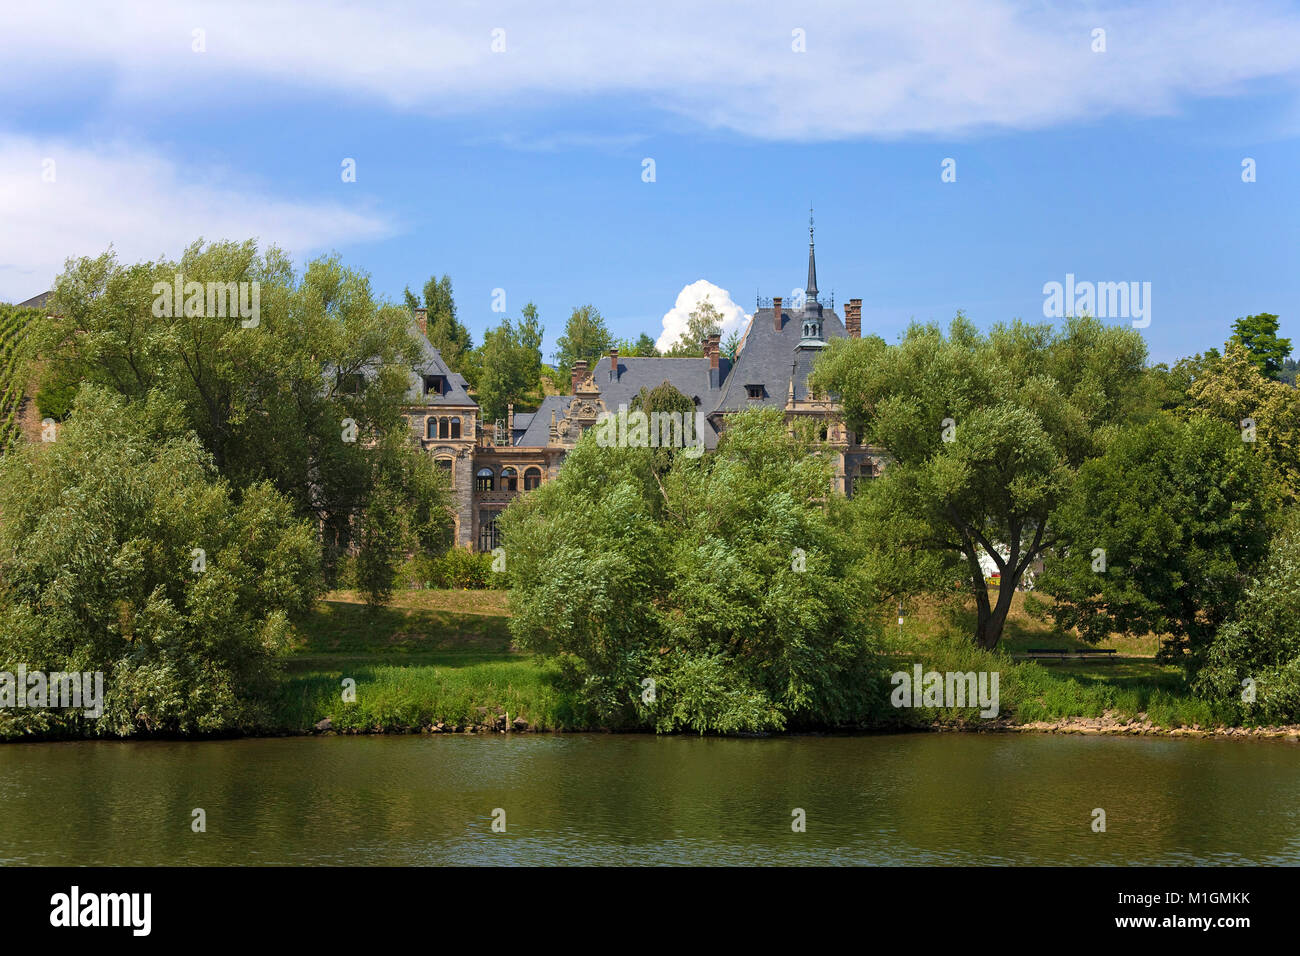 Lieser castle, former vineyard estate today a 5 star hotel at Moselle river, Lieser, Moselle river, Rhineland-Palatinate, - Stock Image